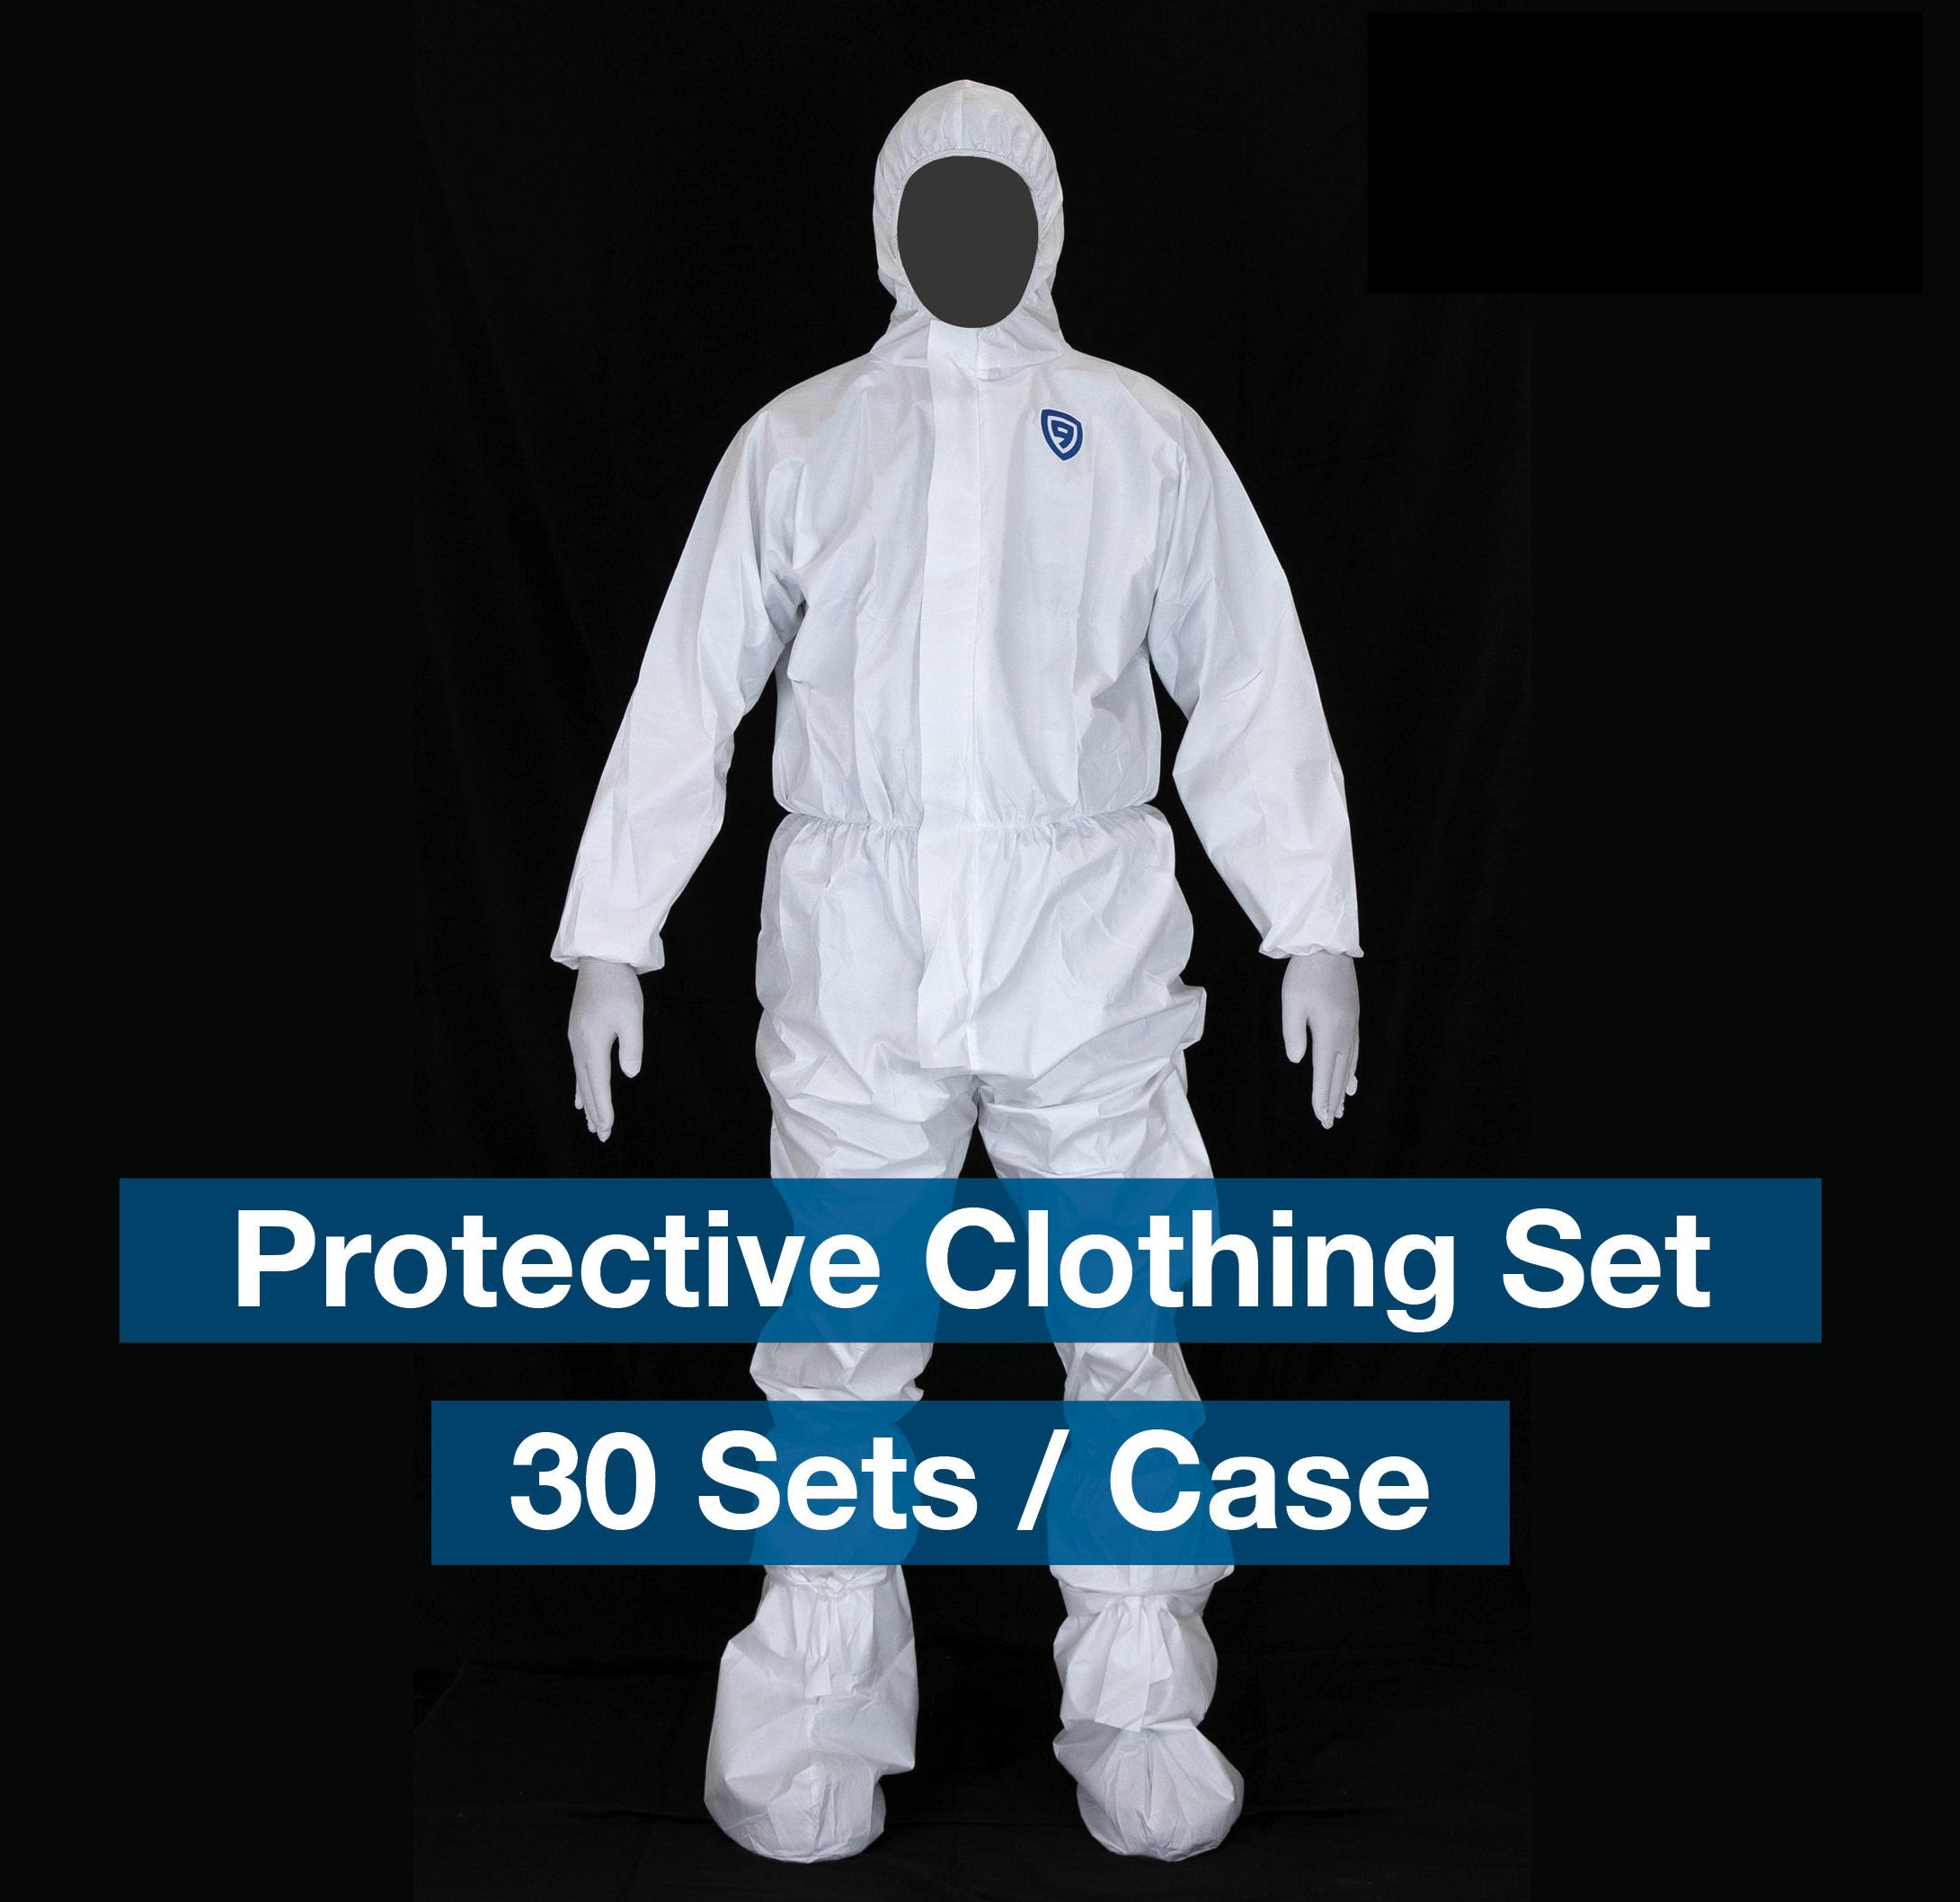 Hooded Coverall Suit w/Boot Covers, Zipper, Elastic Wrists & Ankles  - box of 30 suits  - $19 each - FREE SHIPPING - Brooklyn Equipment